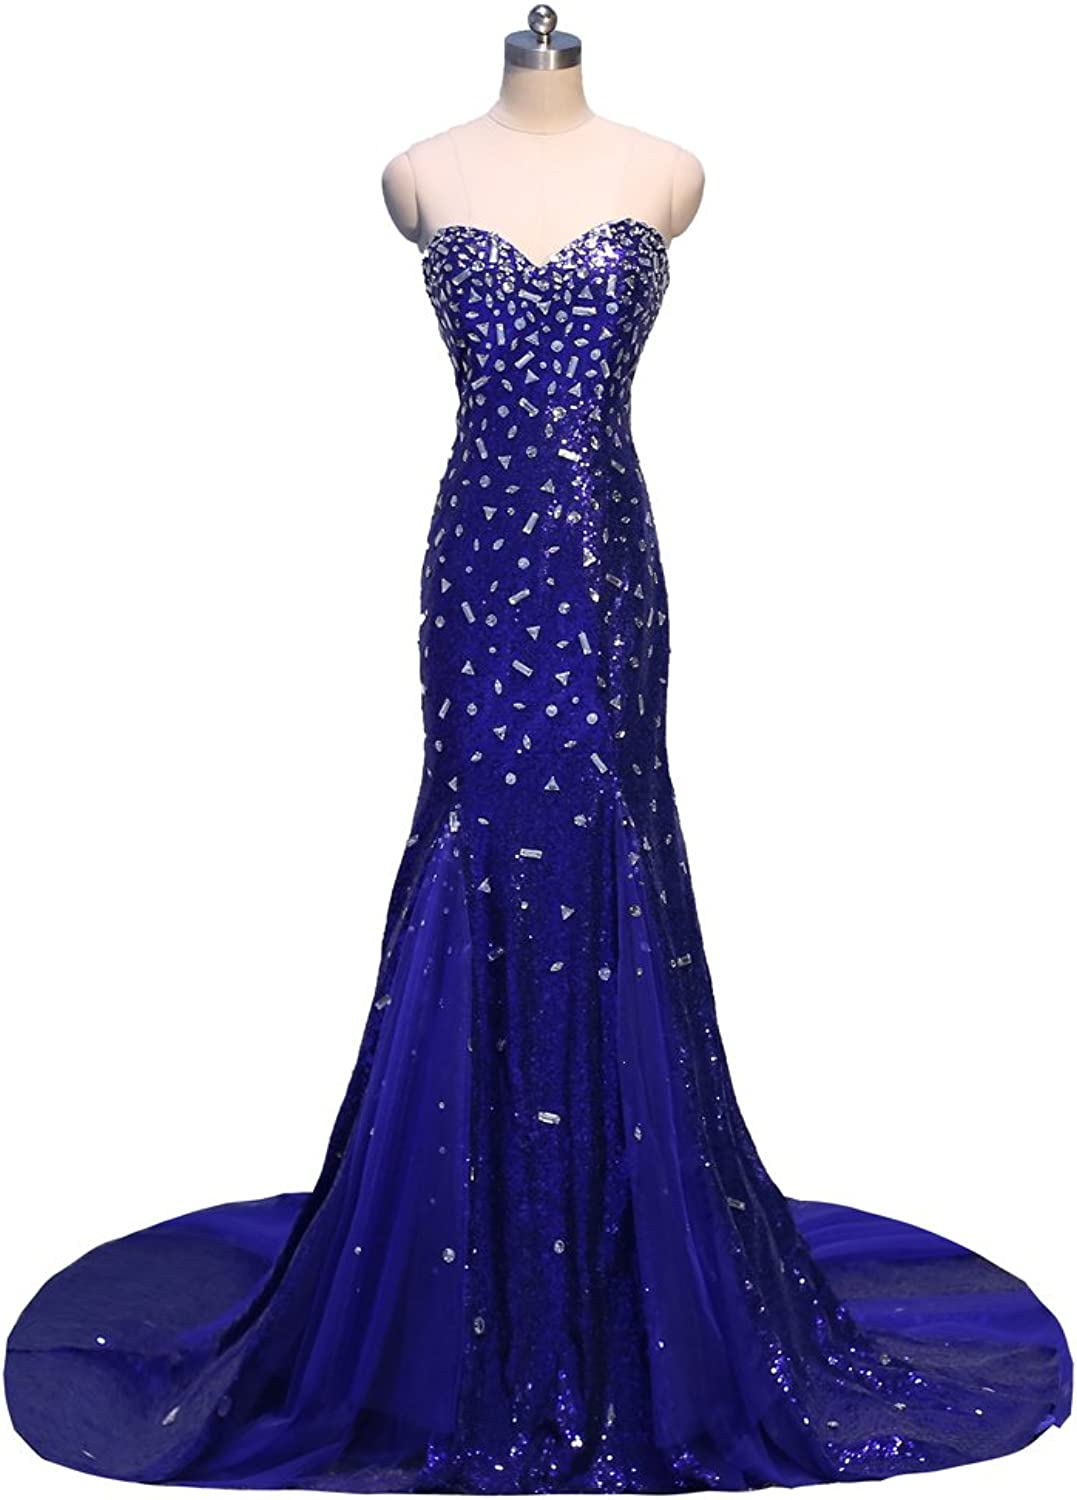 Vimans Women's Long Royal Sweetheart Rhinestone Mermaid Evening Party Gowns